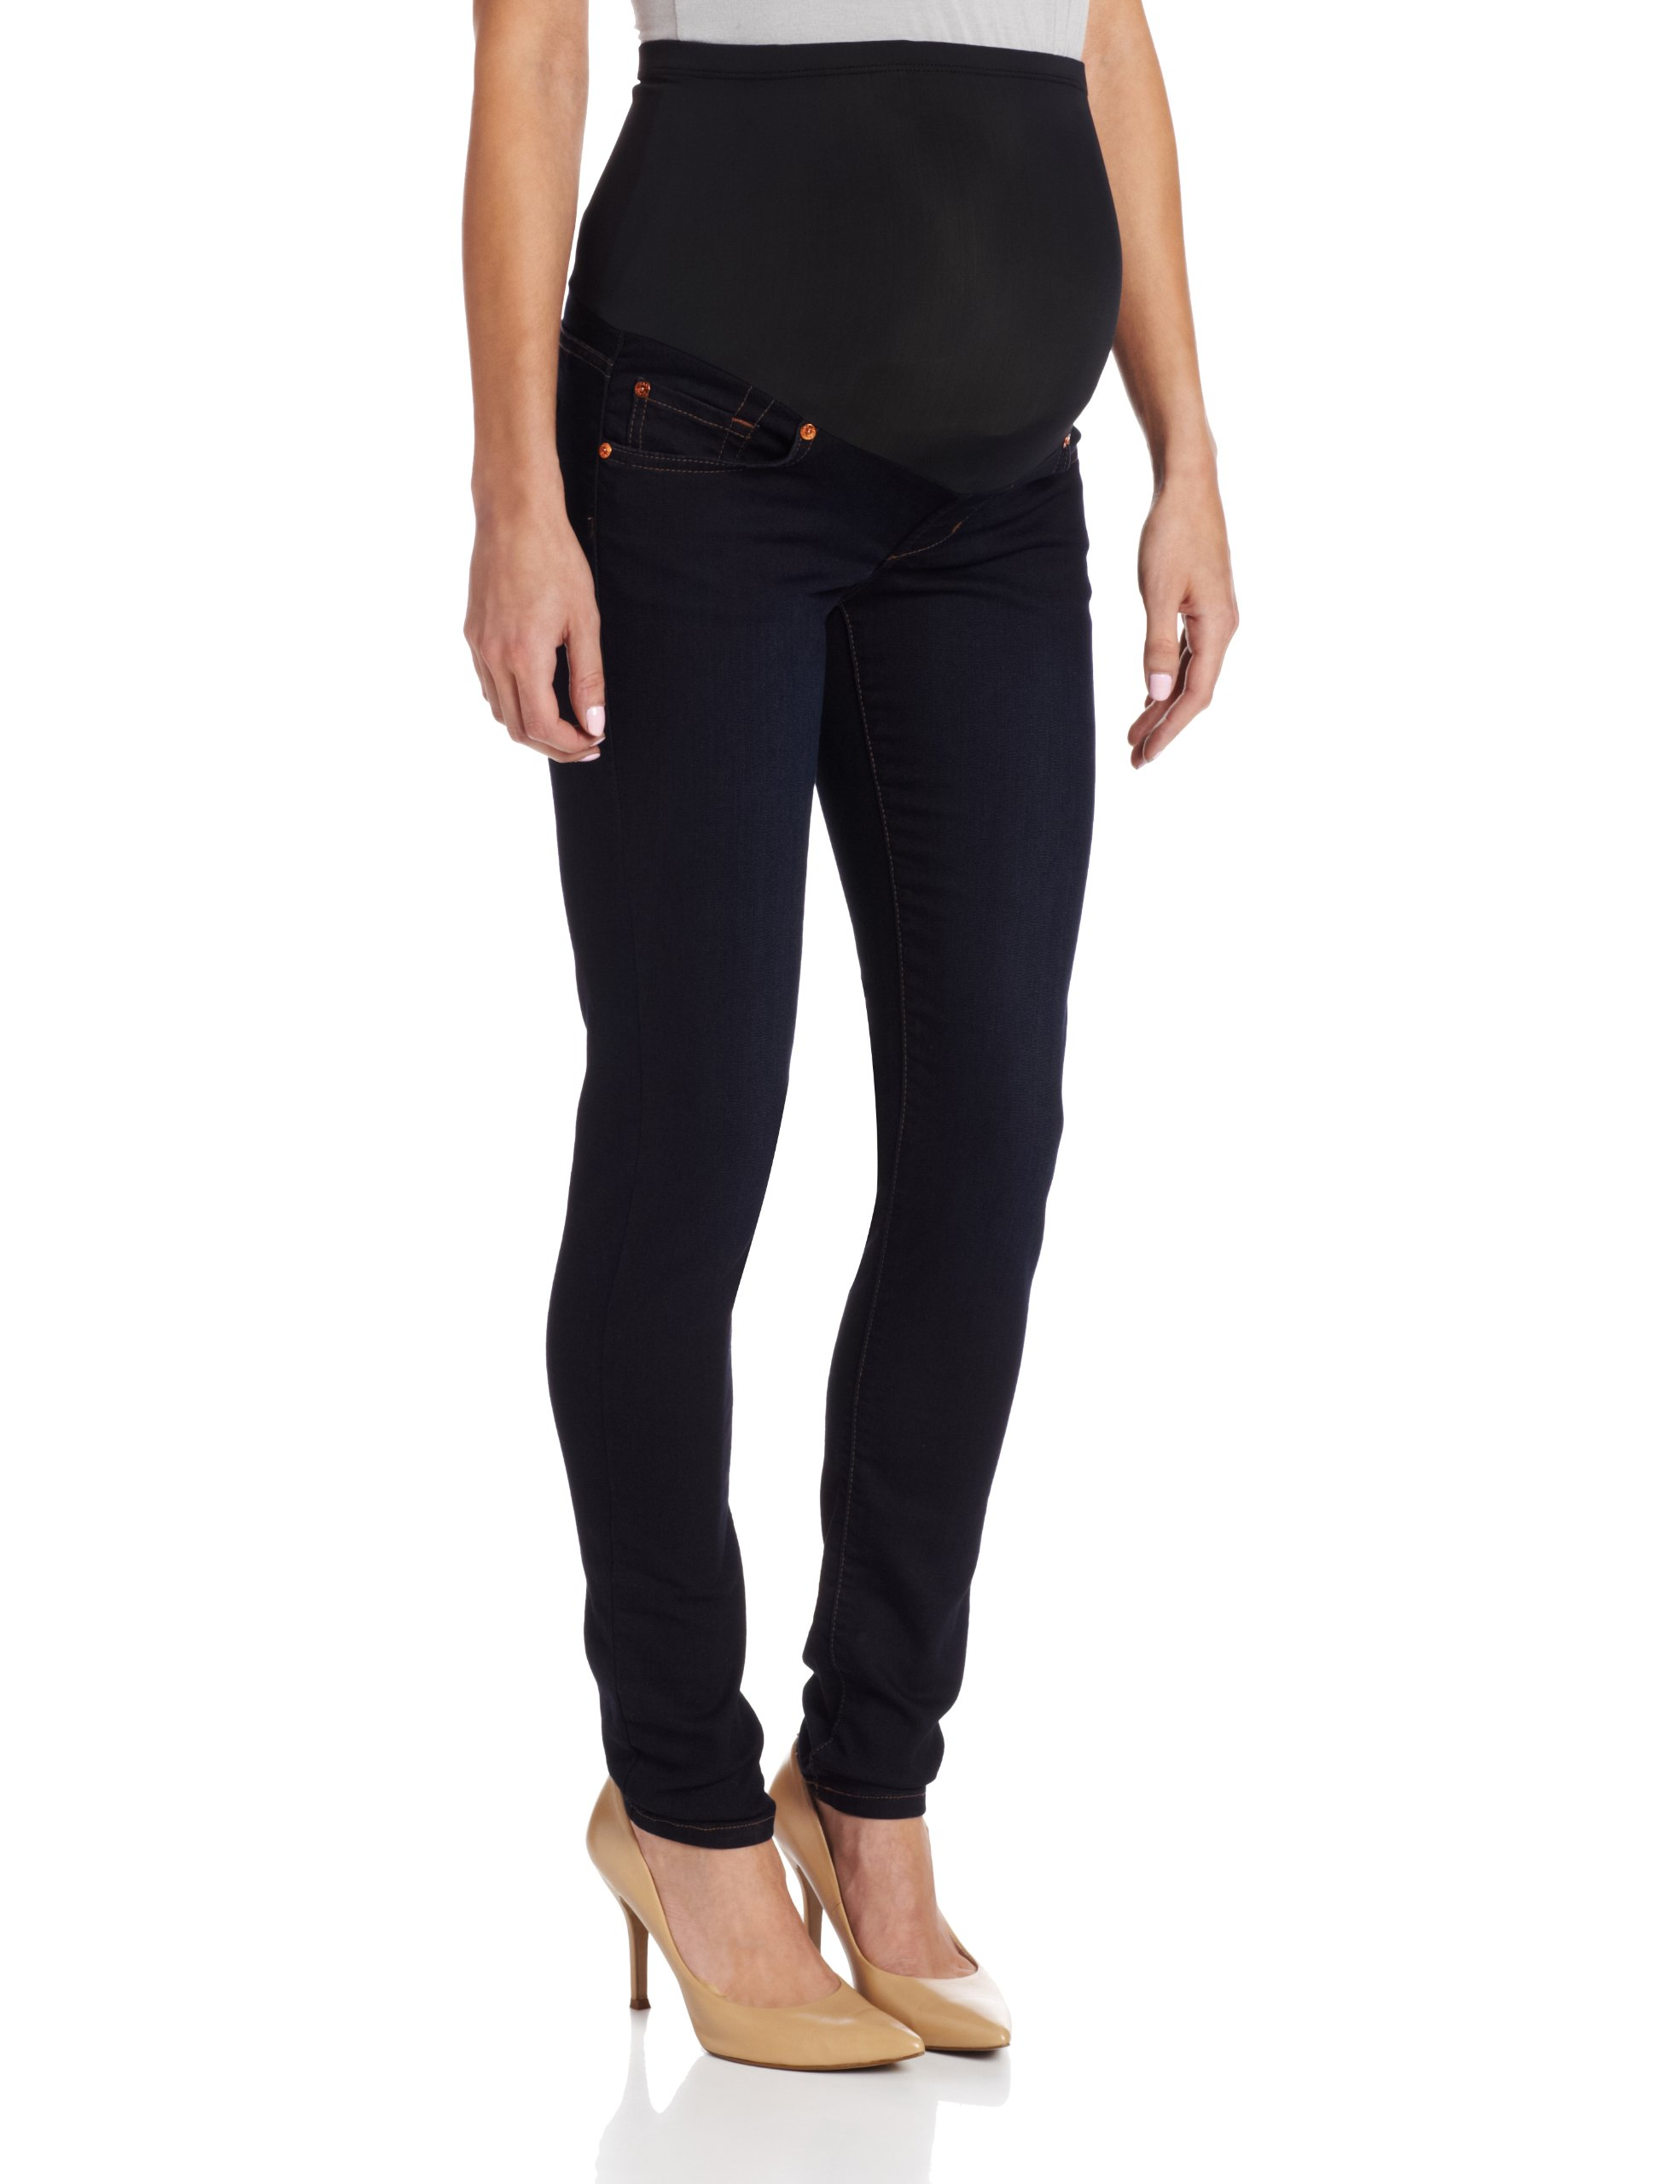 James Jeans Women's Maternity Twiggy Jean Legging,Dark,24